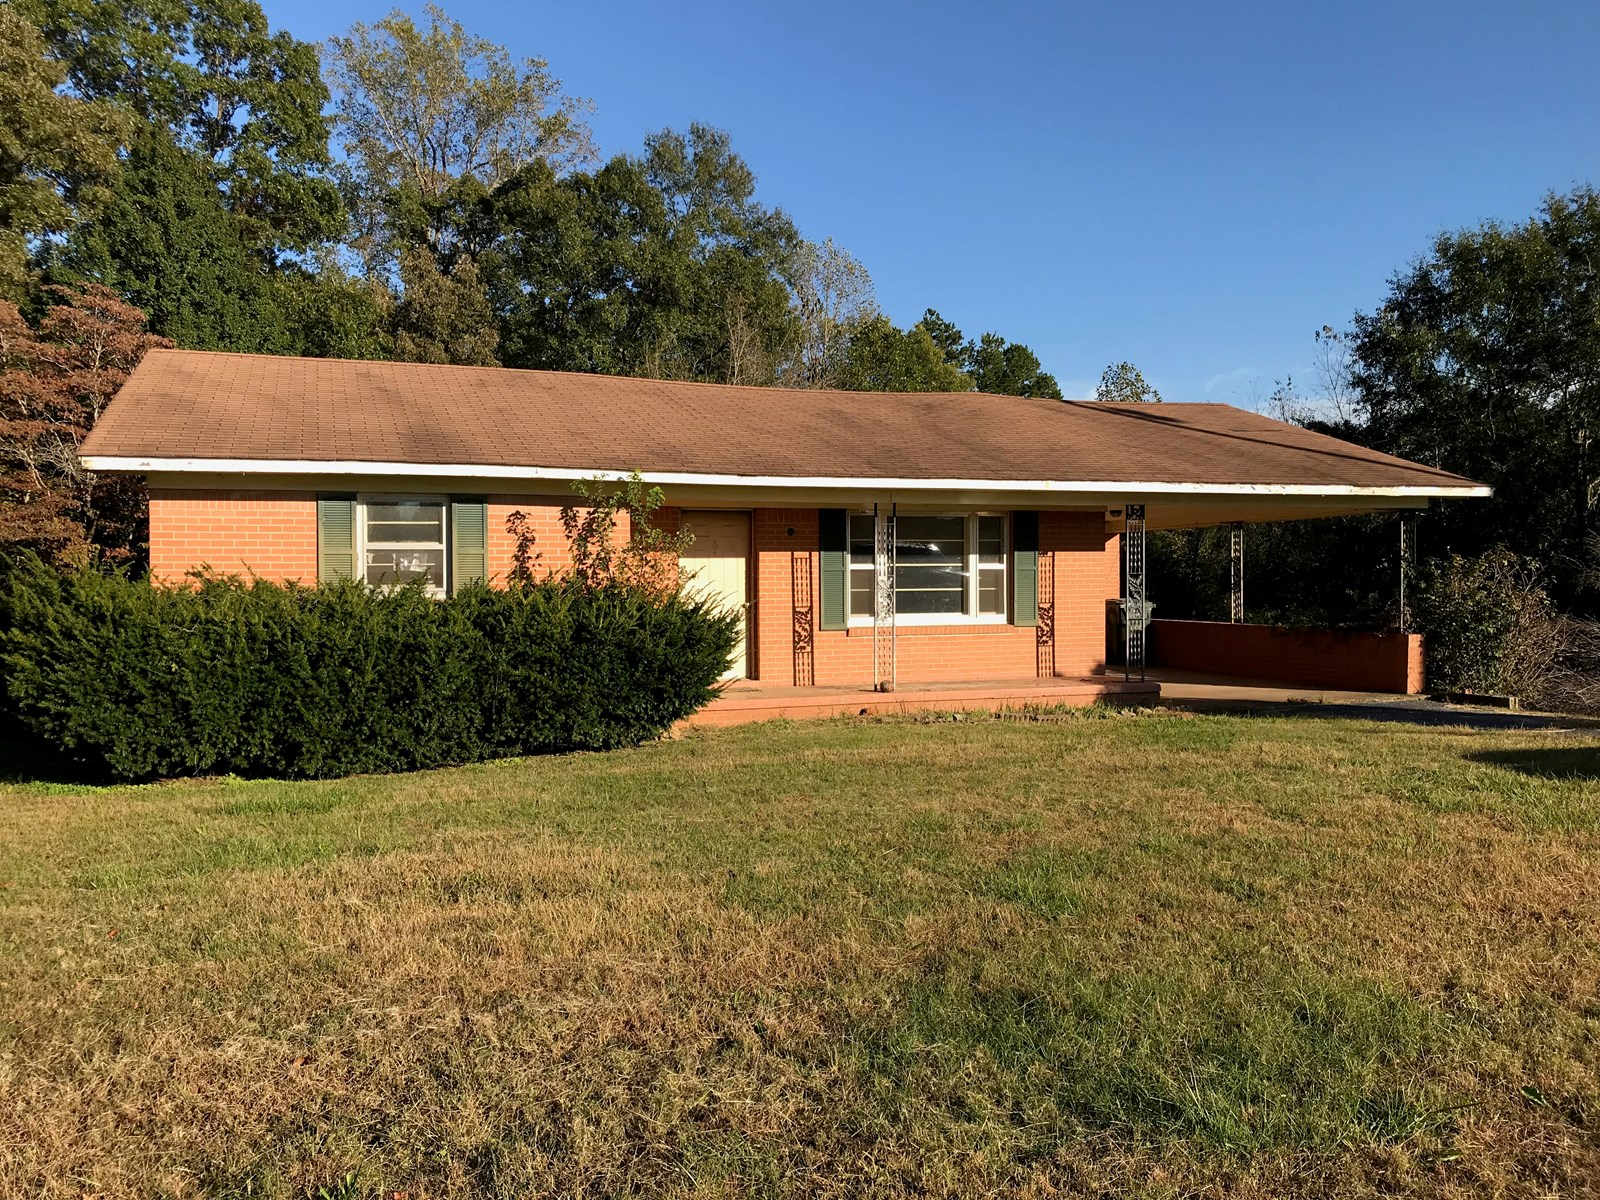 Carroll County Tennessee Home For Sale, Brick Home